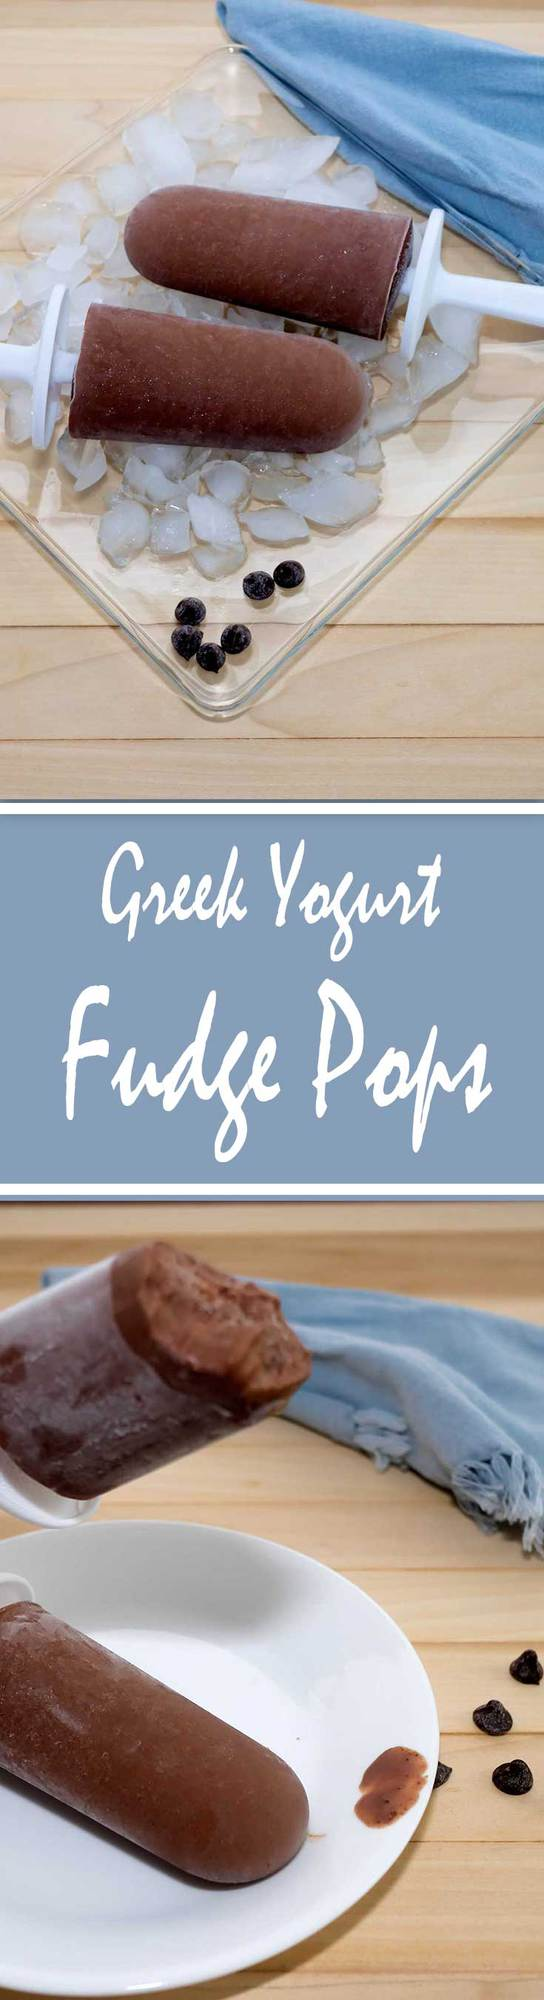 Greek_Yogurt_Fudge_Popsicles